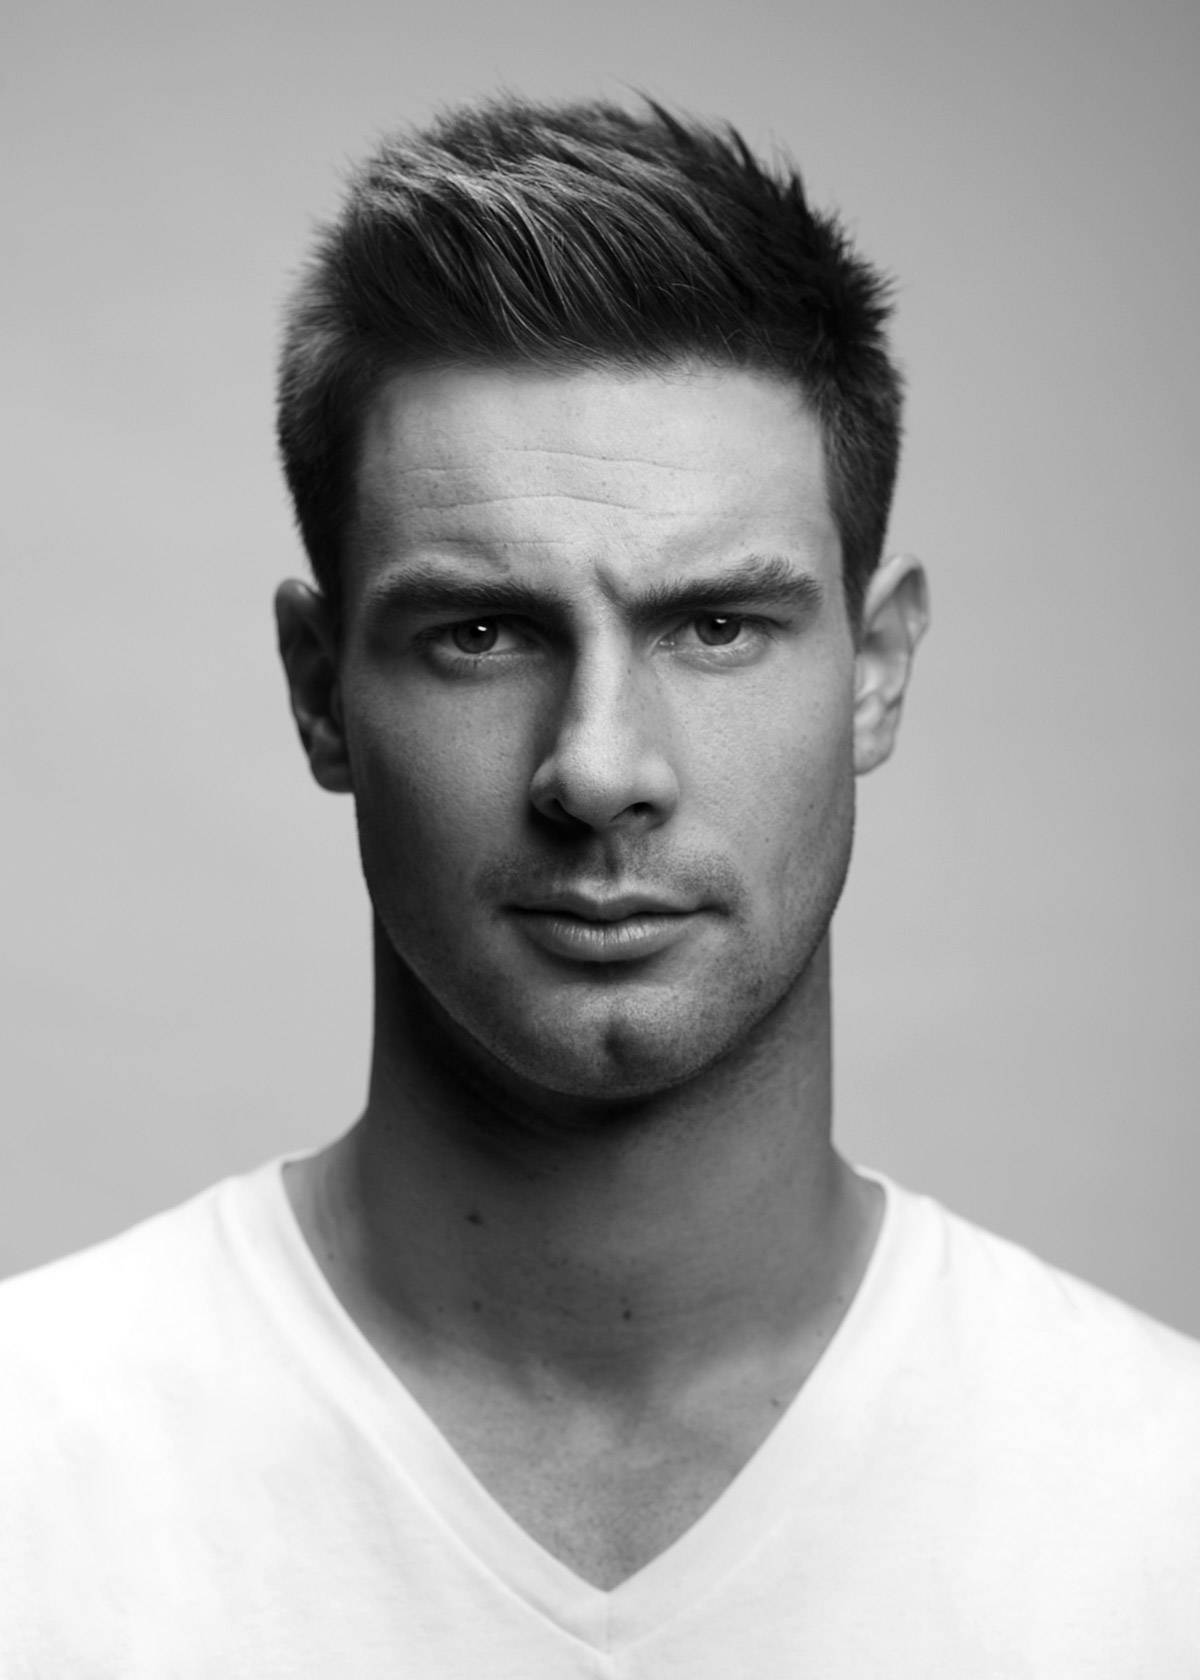 50 Easy Stylish Short Hairstyles For Men 2020 Edition